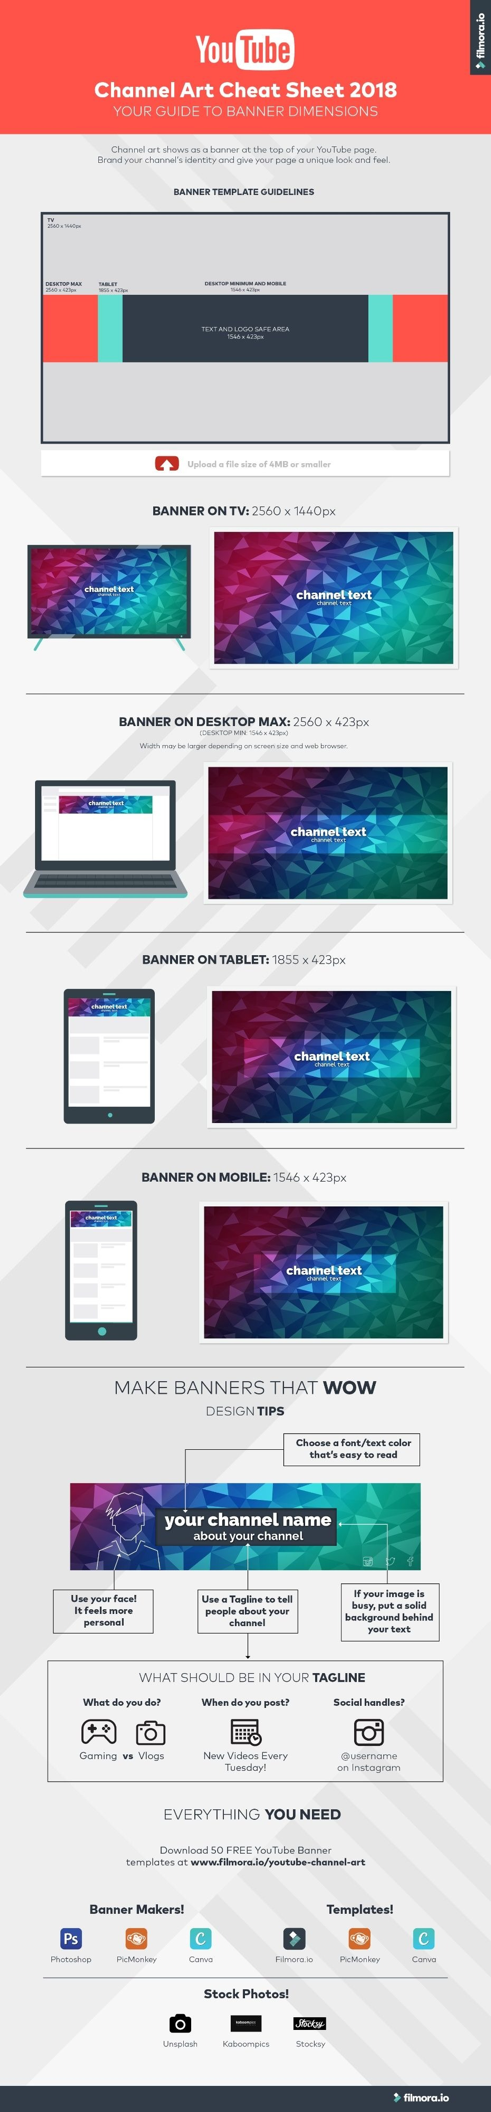 YouTube Channel Art Cheat Sheet 2018 [Infographic] | Social Media Today